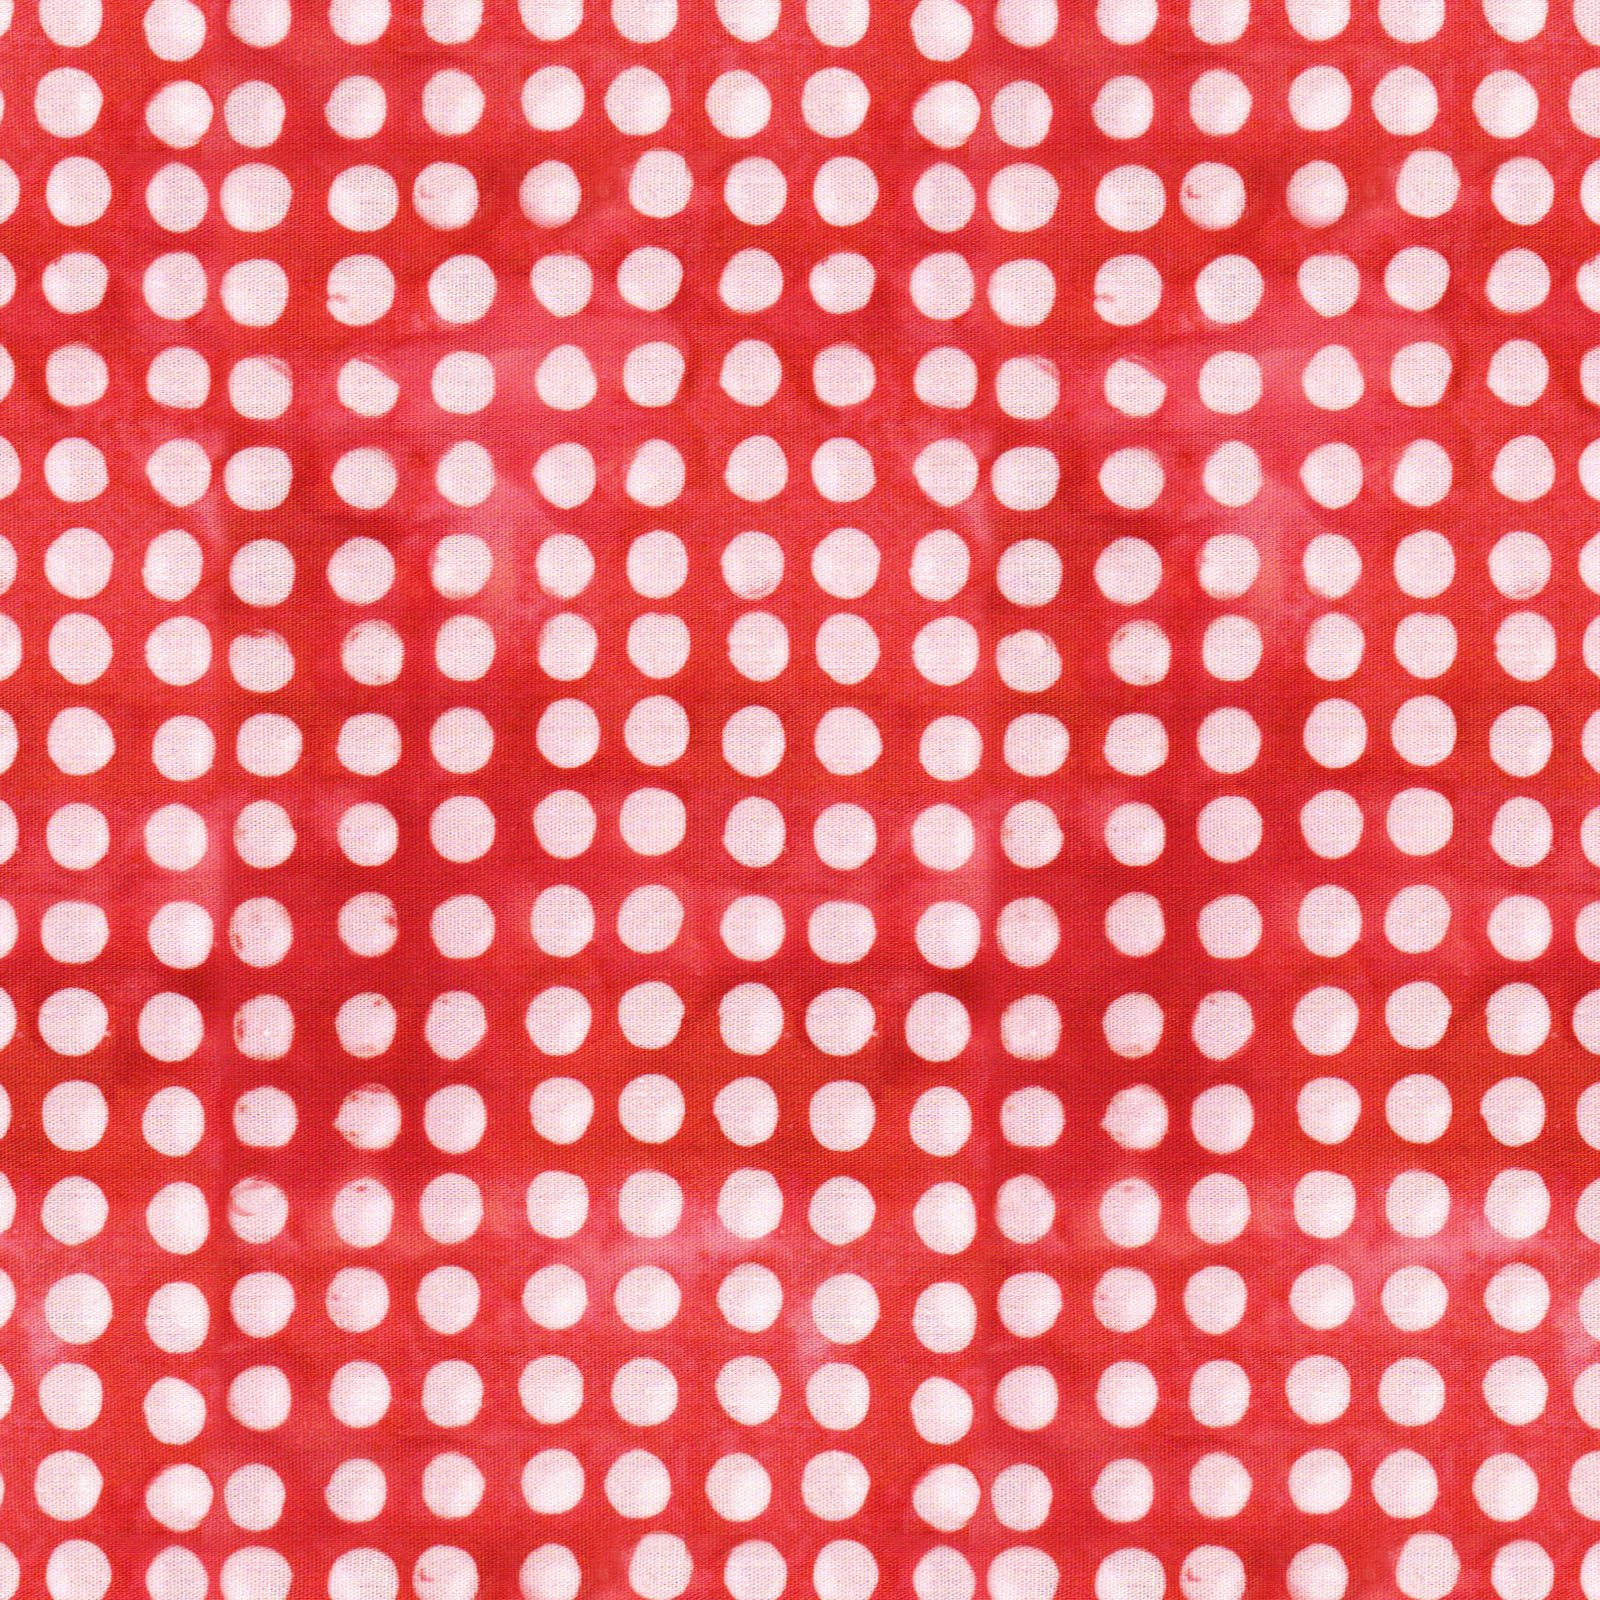 EESC-B56 RW - COLOR THERAPY BATIKS BY MAYWOOD STUDIO POLKA DOT RED/WHITE - ARRIVING DECEMBER 2020